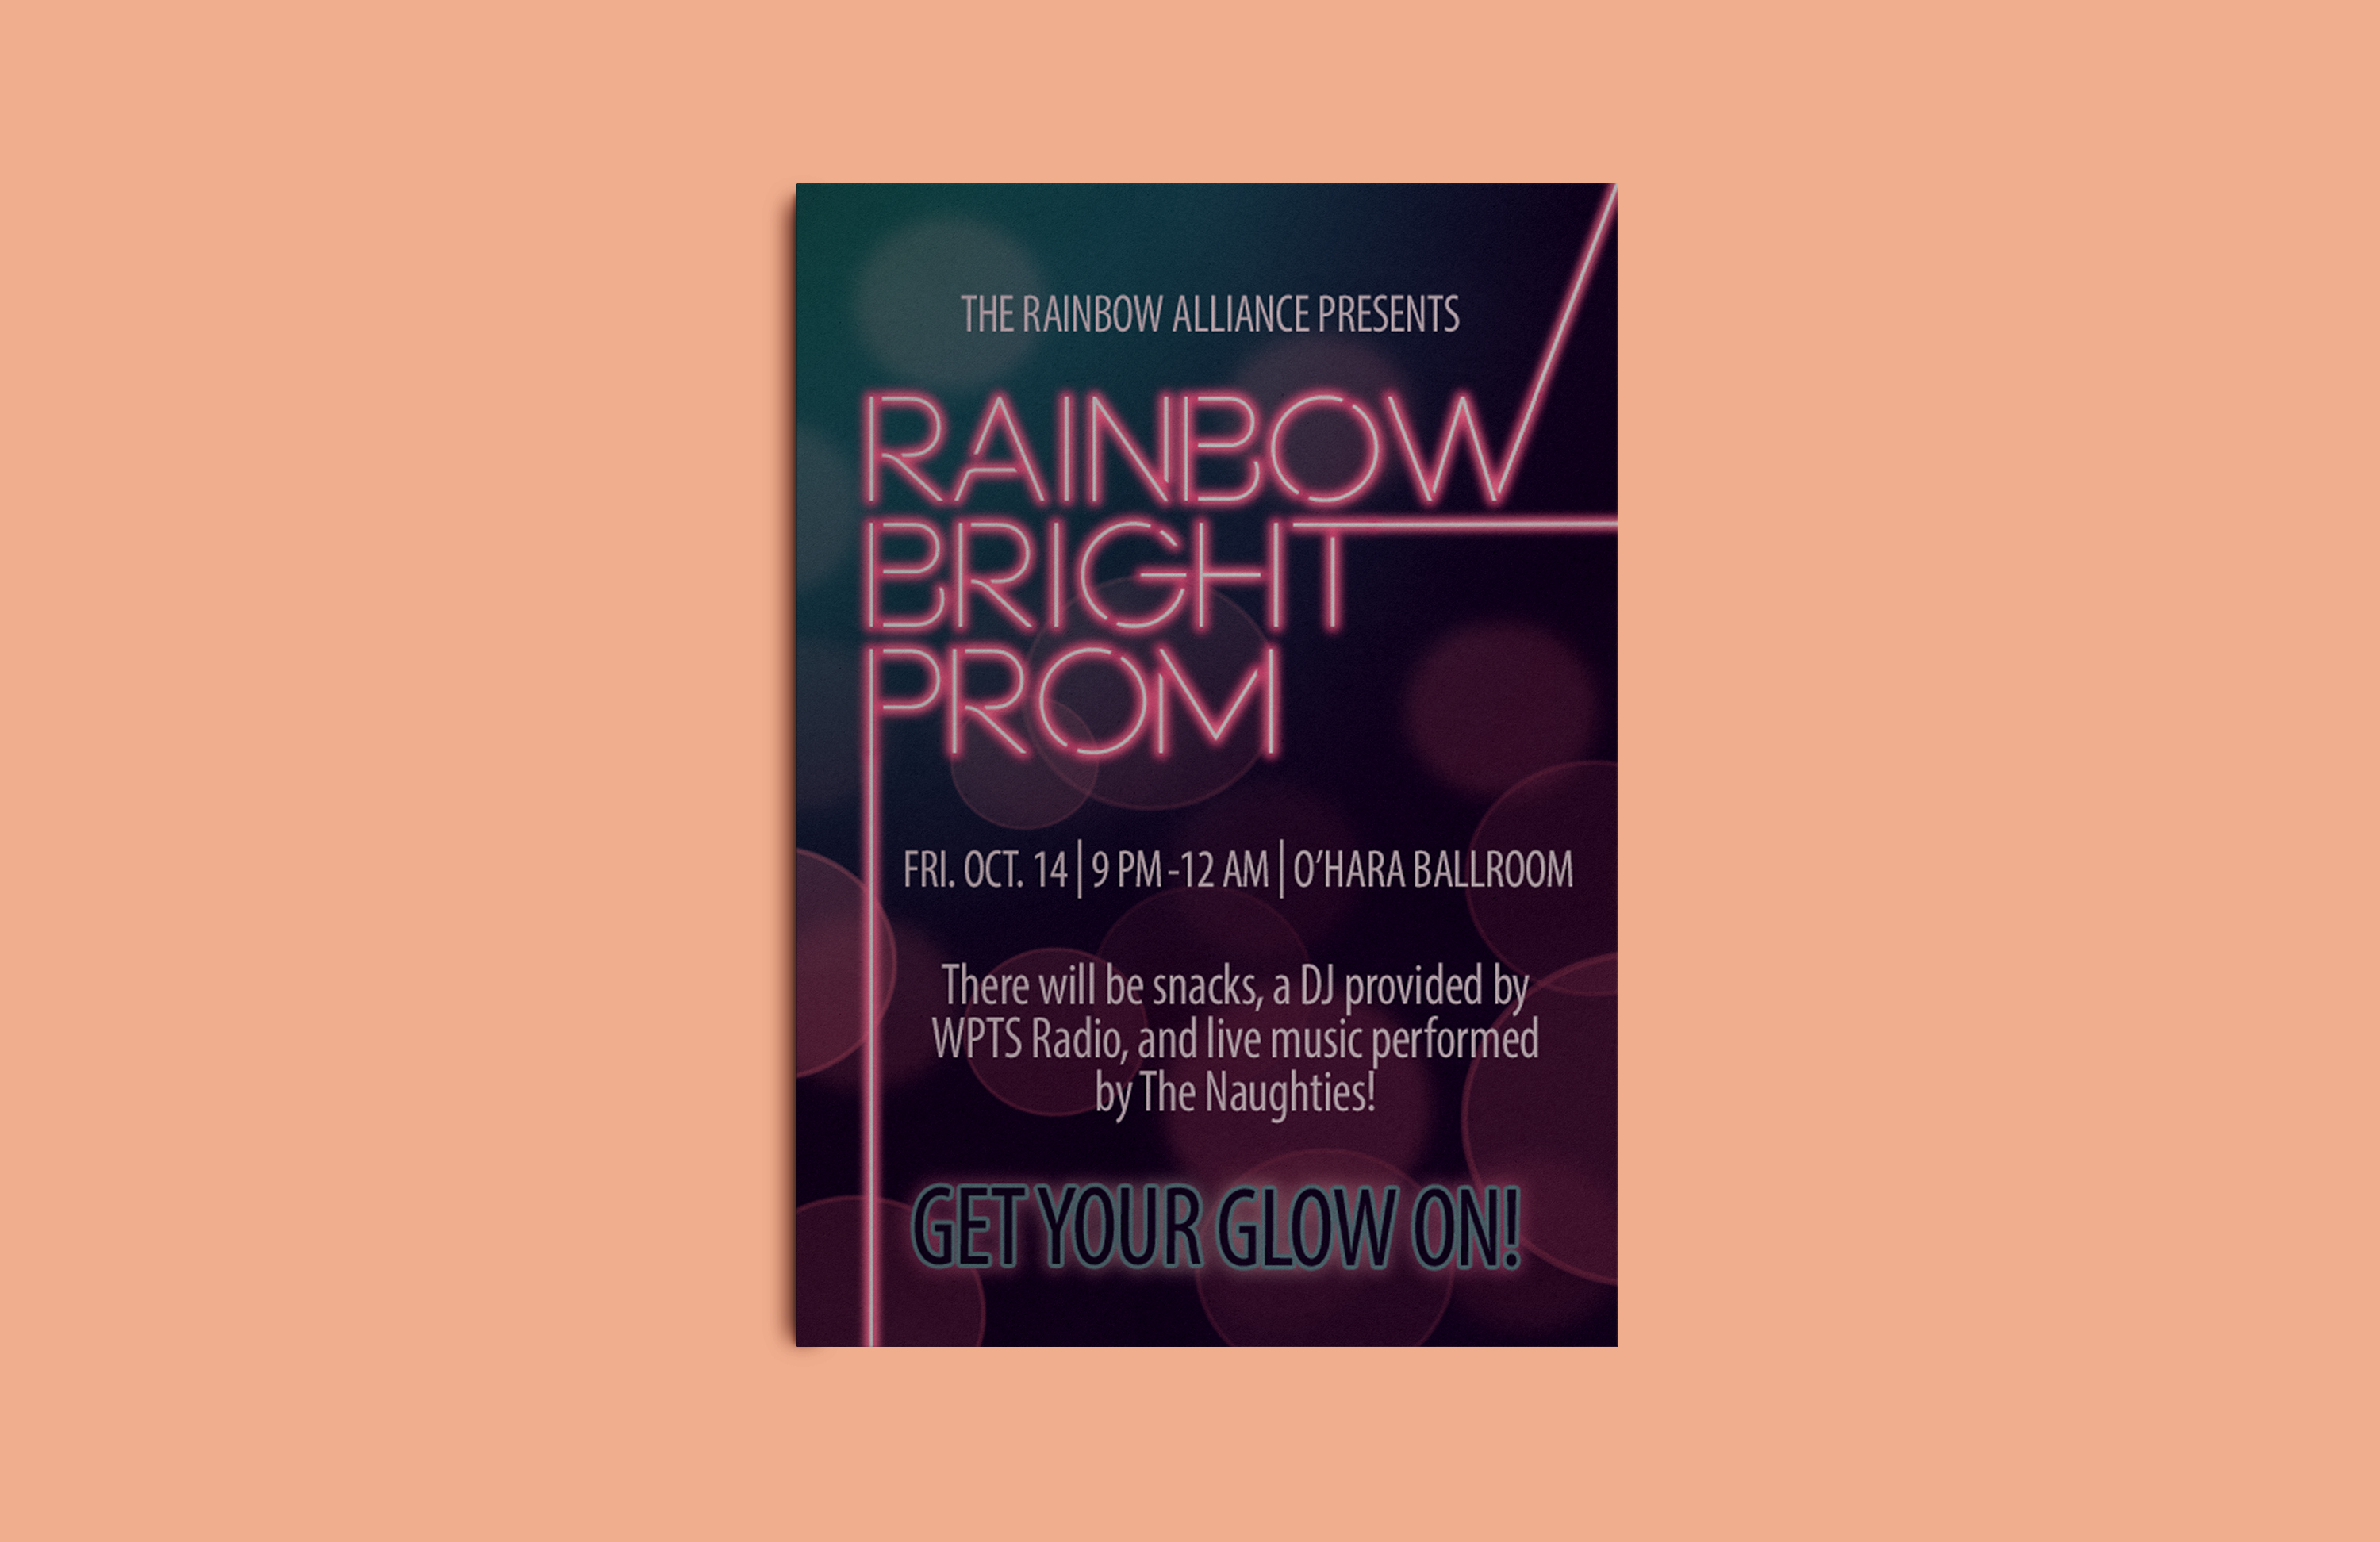 A mockup of a poster over a salmon-colored background. The poster served as an ad for a prom event called Rainbow Bright Prom. the poster's design features pink headline text that looks like a neon sign, and a teal-purple gradient background with a bokeh light effect.